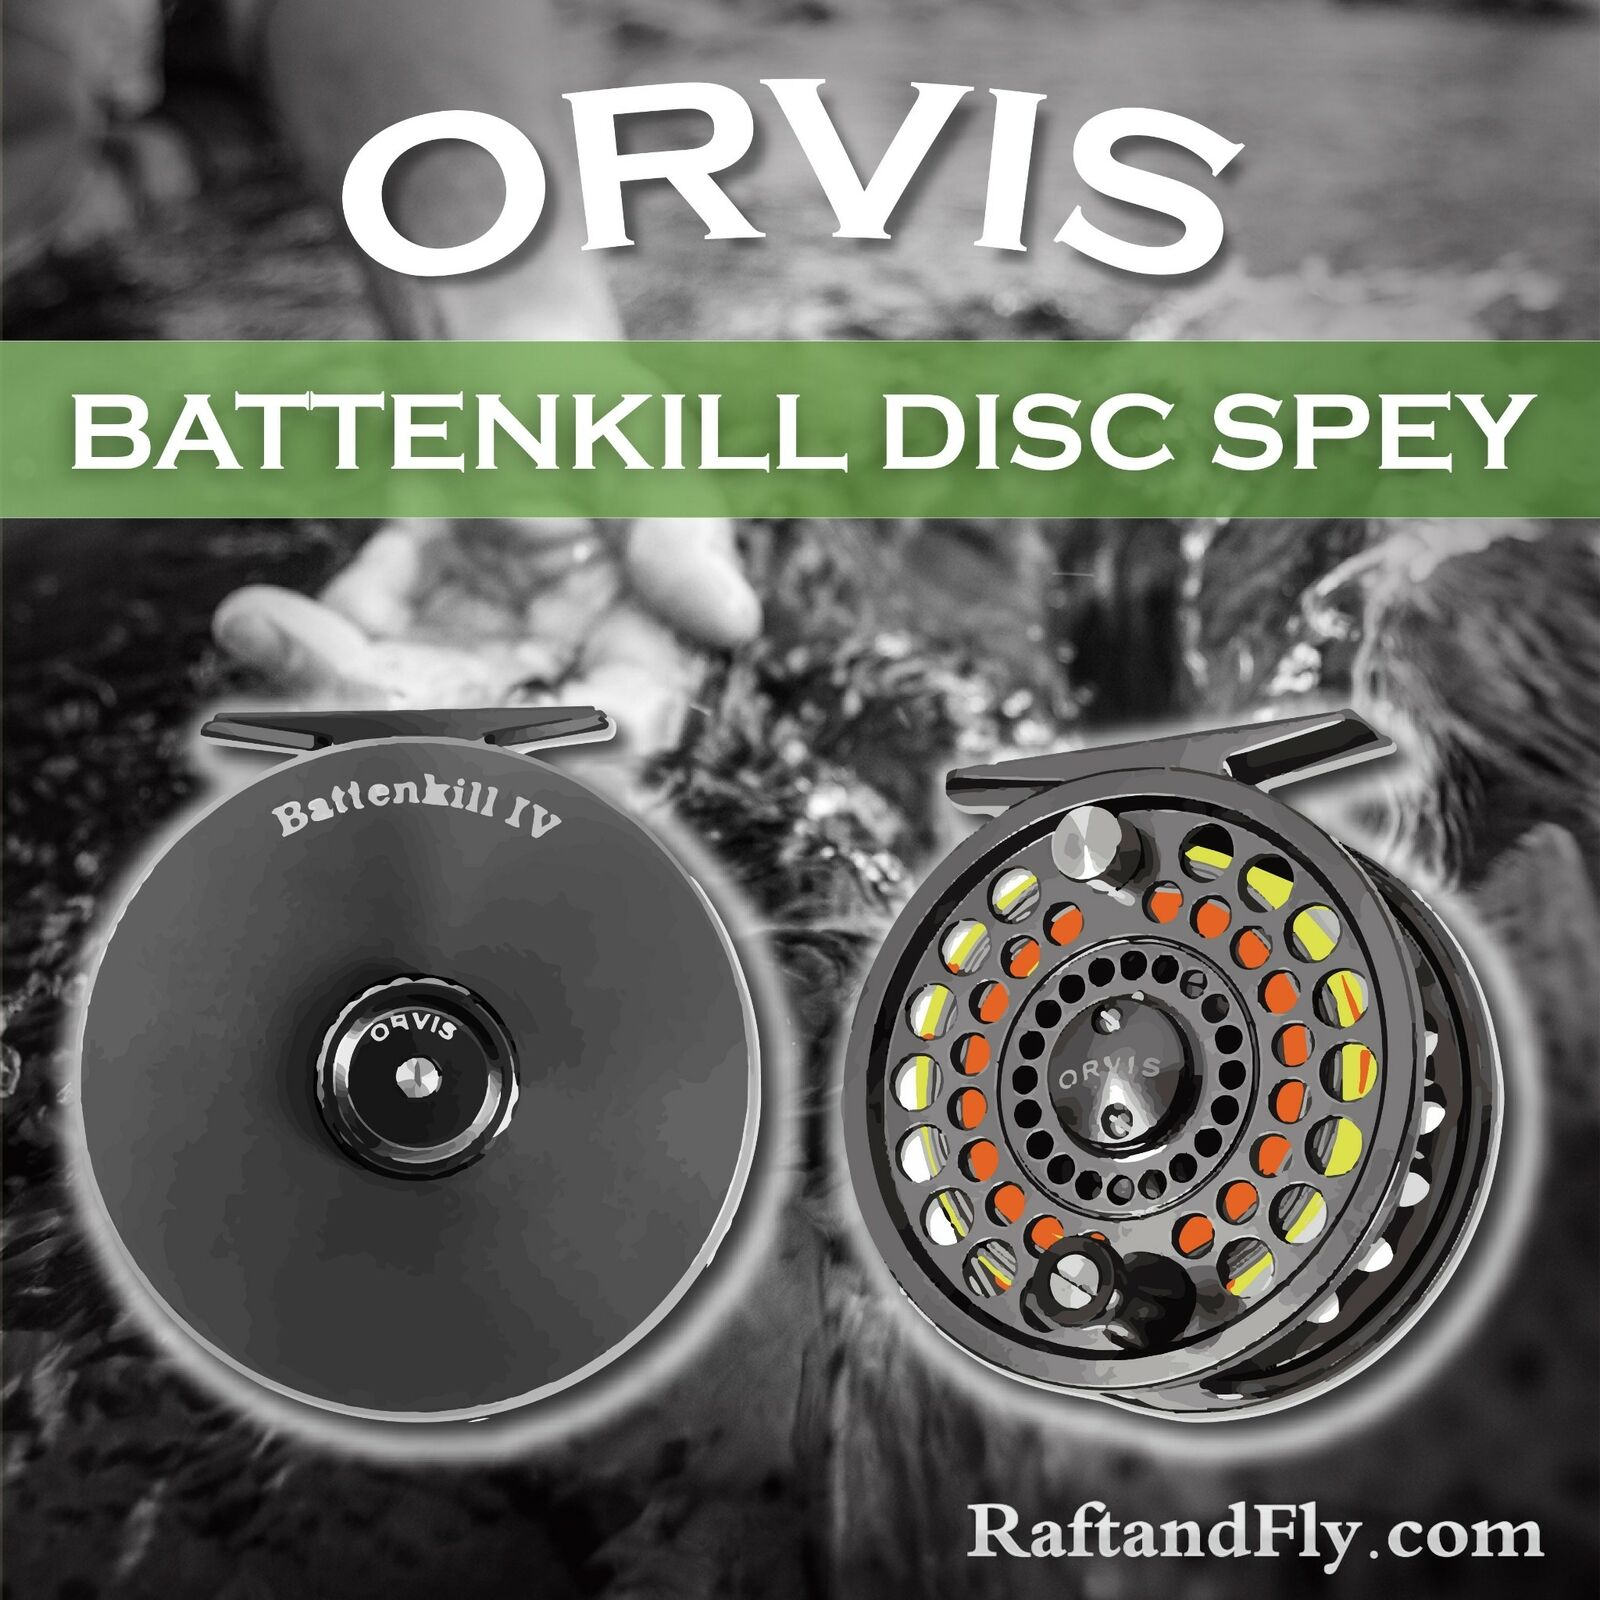 Orvis Battenkill IV Disc  Spey 7-9wt Spey Reel - Free Shipping  wholesale prices